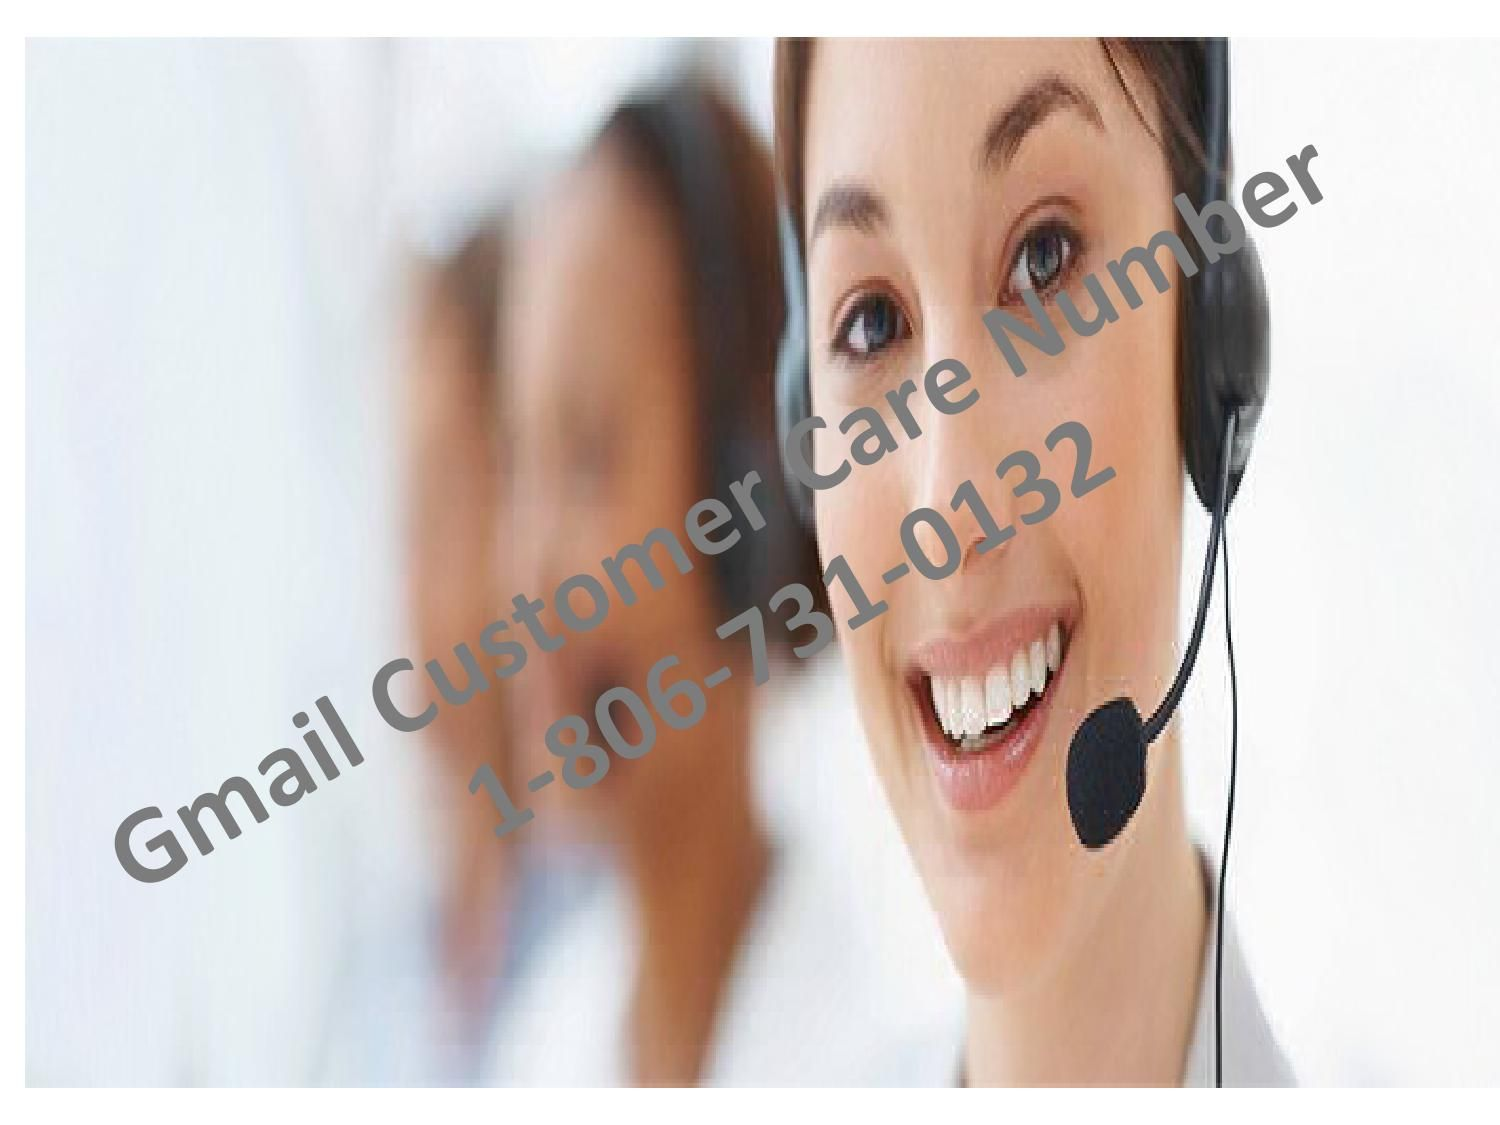 Facing gmail issue call gmail customer care 1 806 731